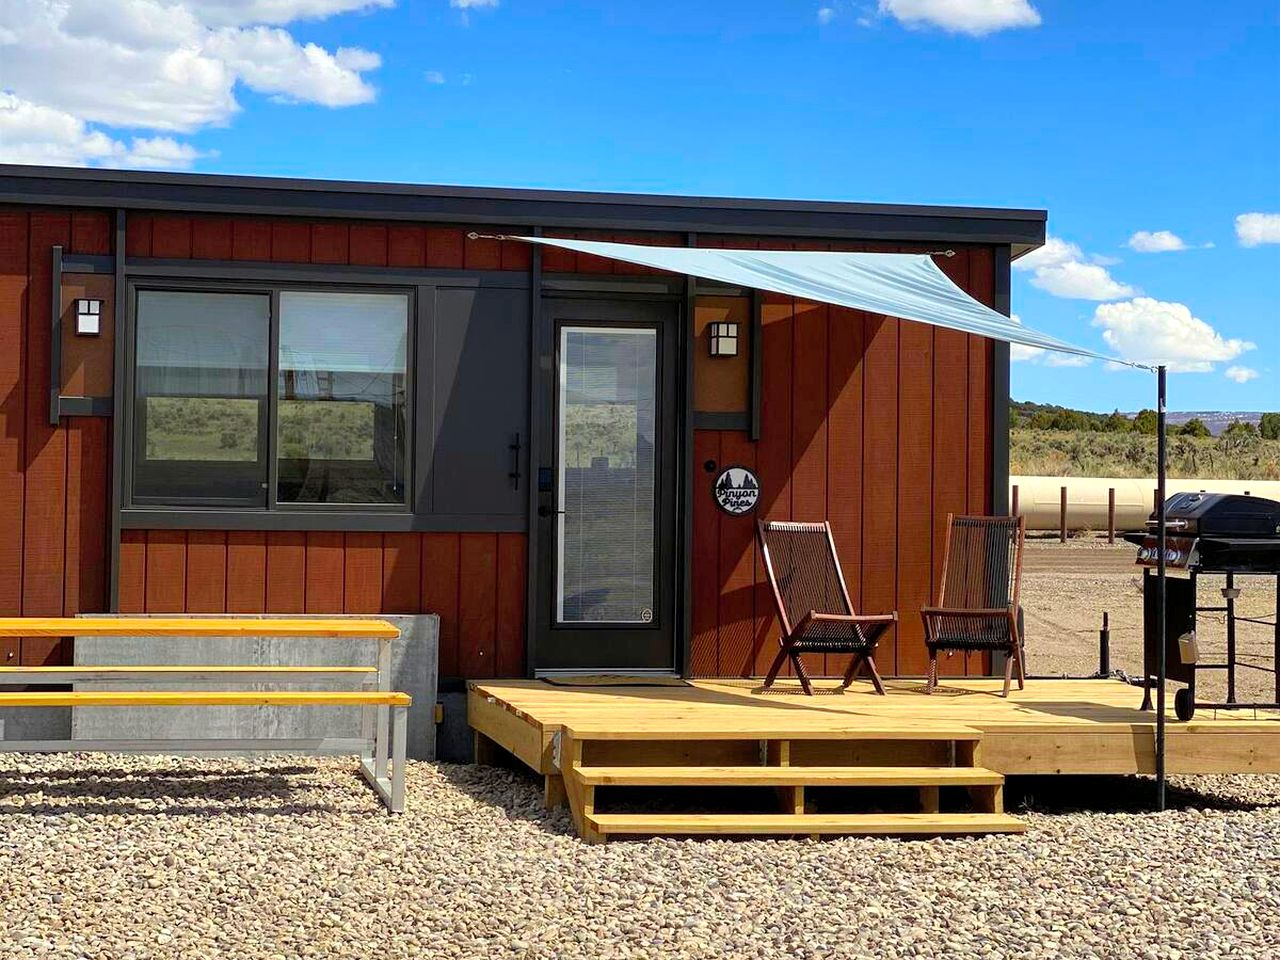 Tiny house rental that's perfect for a weekend getaway in Colorado